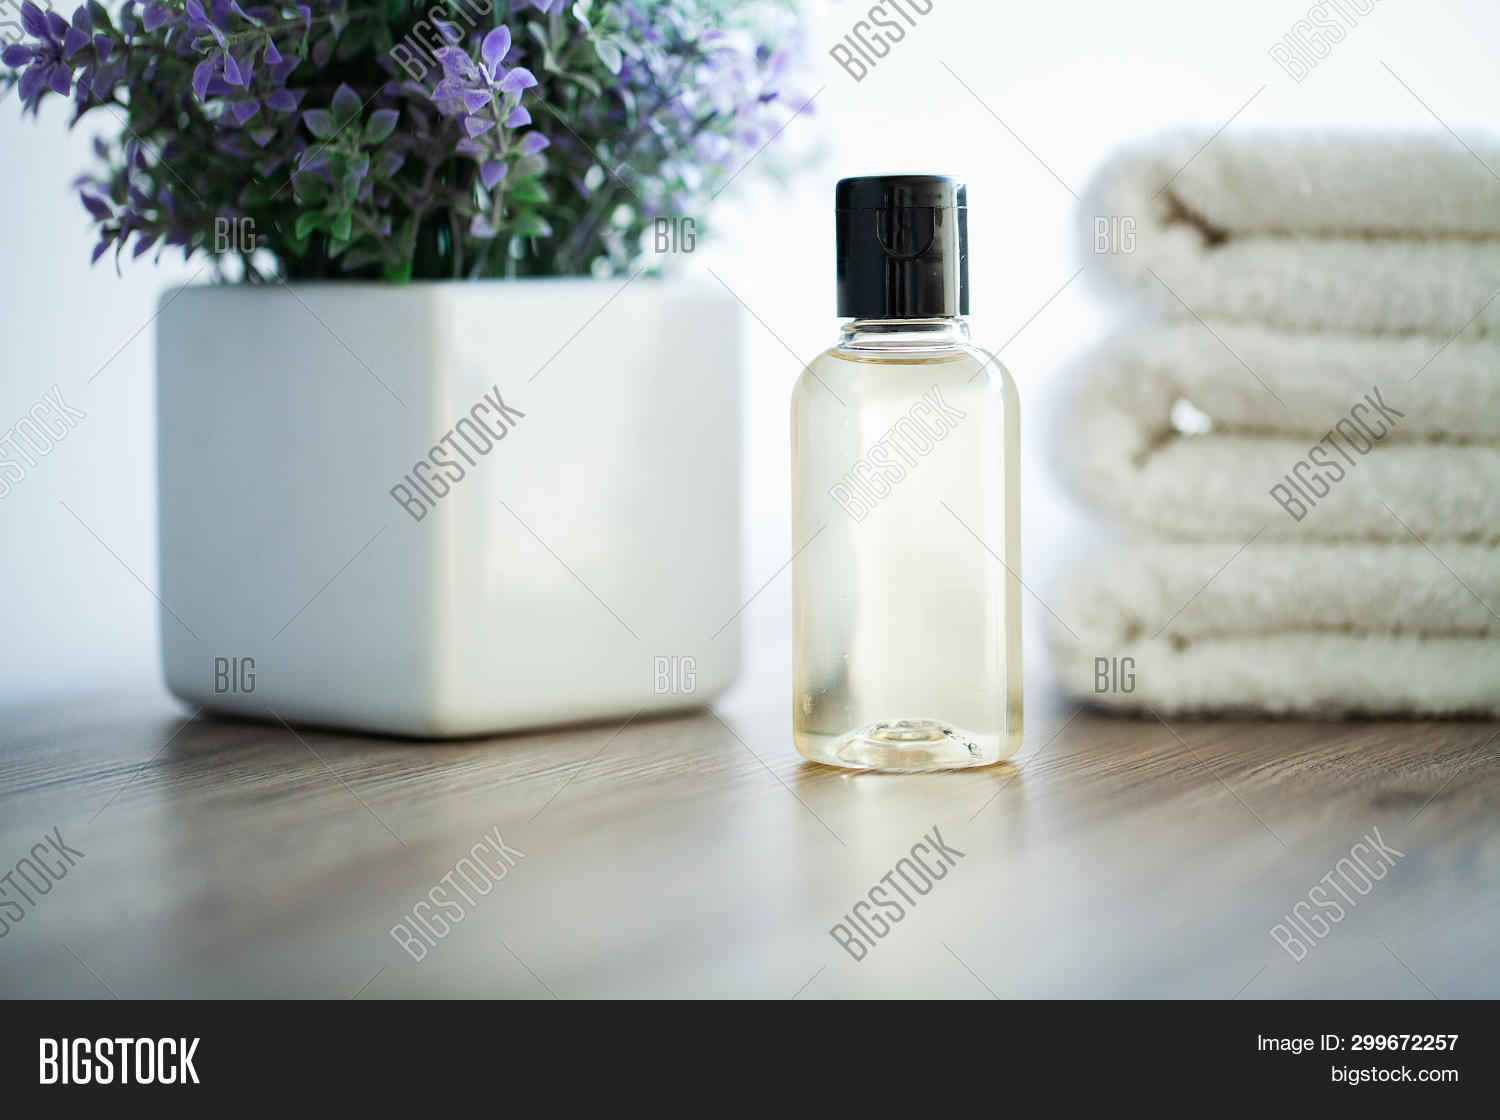 backdrop,background,bath,bathroom,body,care,clean,cloth,color,copy,cotton,dispenser,dry,empty,fabric,folded,fresh,health,home,hotel,hygiene,indoors,laundry,natural,nobody,object,oil,pastel,perfume,pink,plant,relax,rolled,shower,sill,soap,soft,spa,space,stack,table,textile,towel,treatment,wash,white,window,windowsill